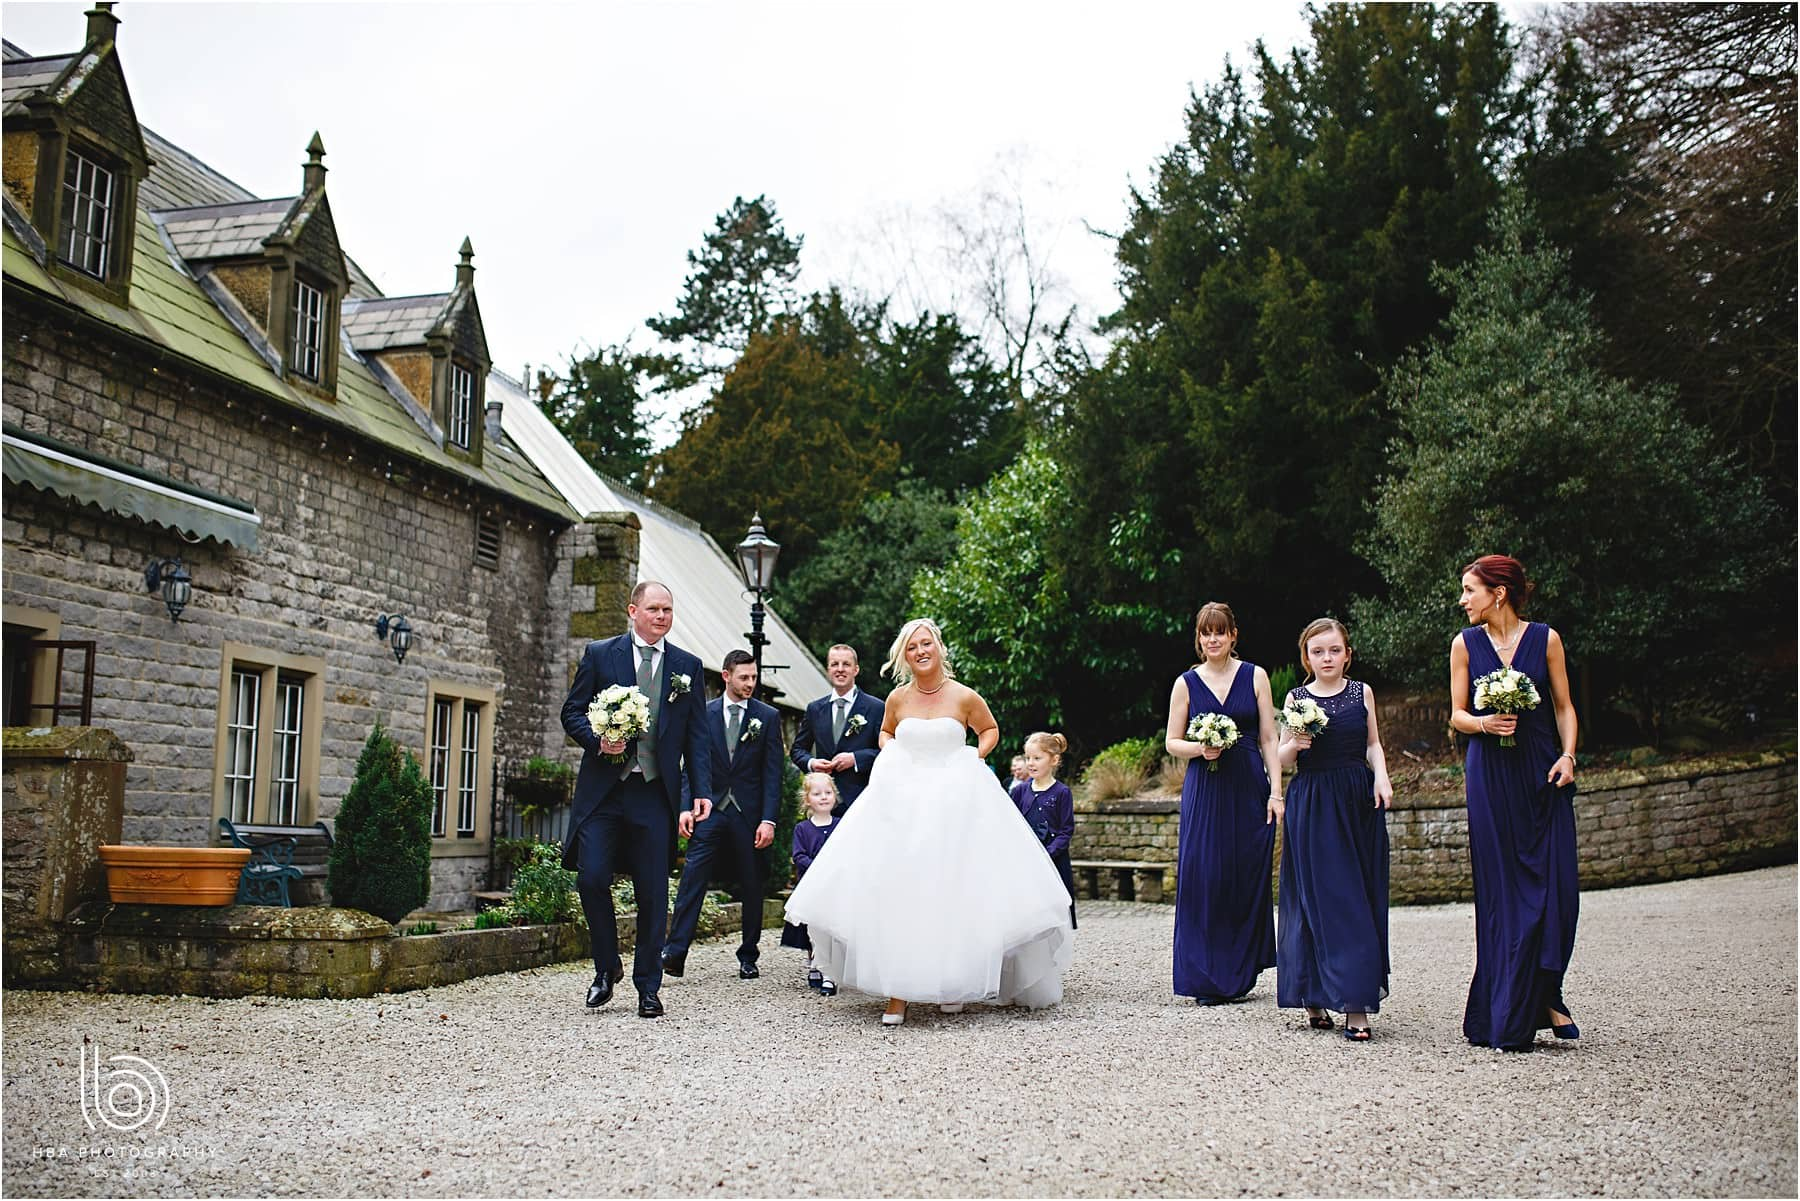 The bride and the bridal party outside at Cressbrook Hall